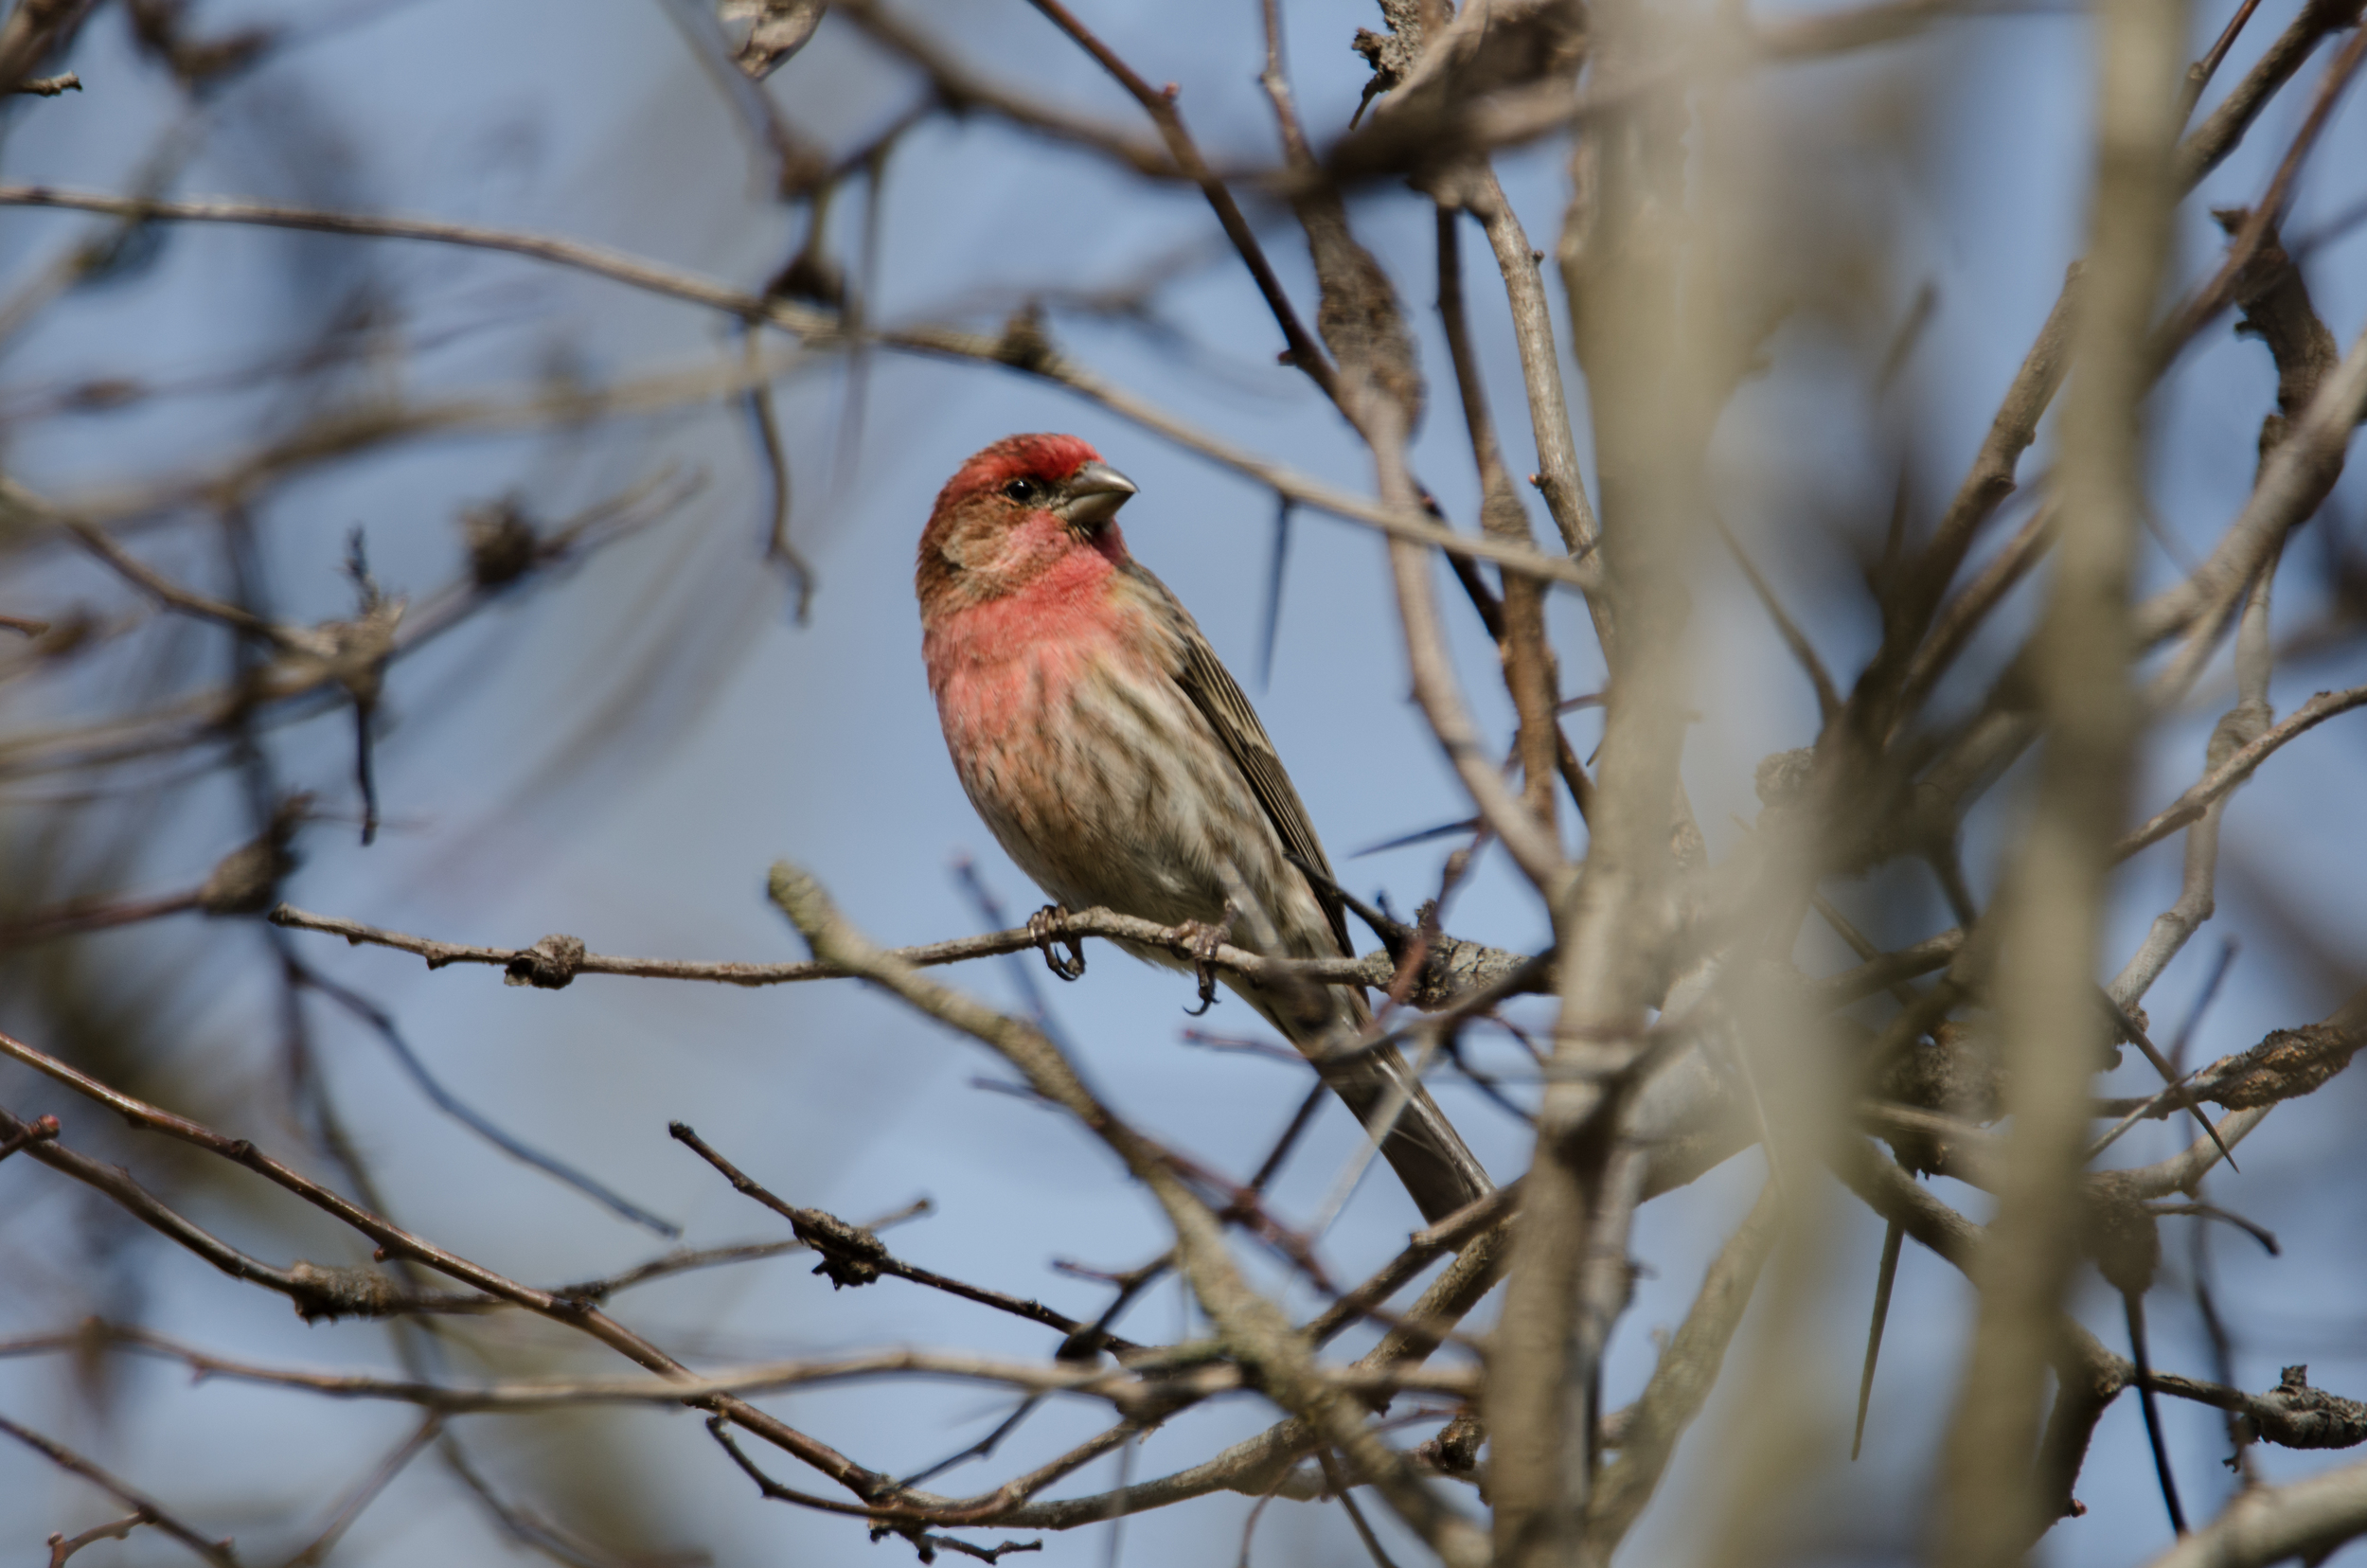 House Finch  Nikon D7000 ISO 250 600mm f/6.3 1/500 sec